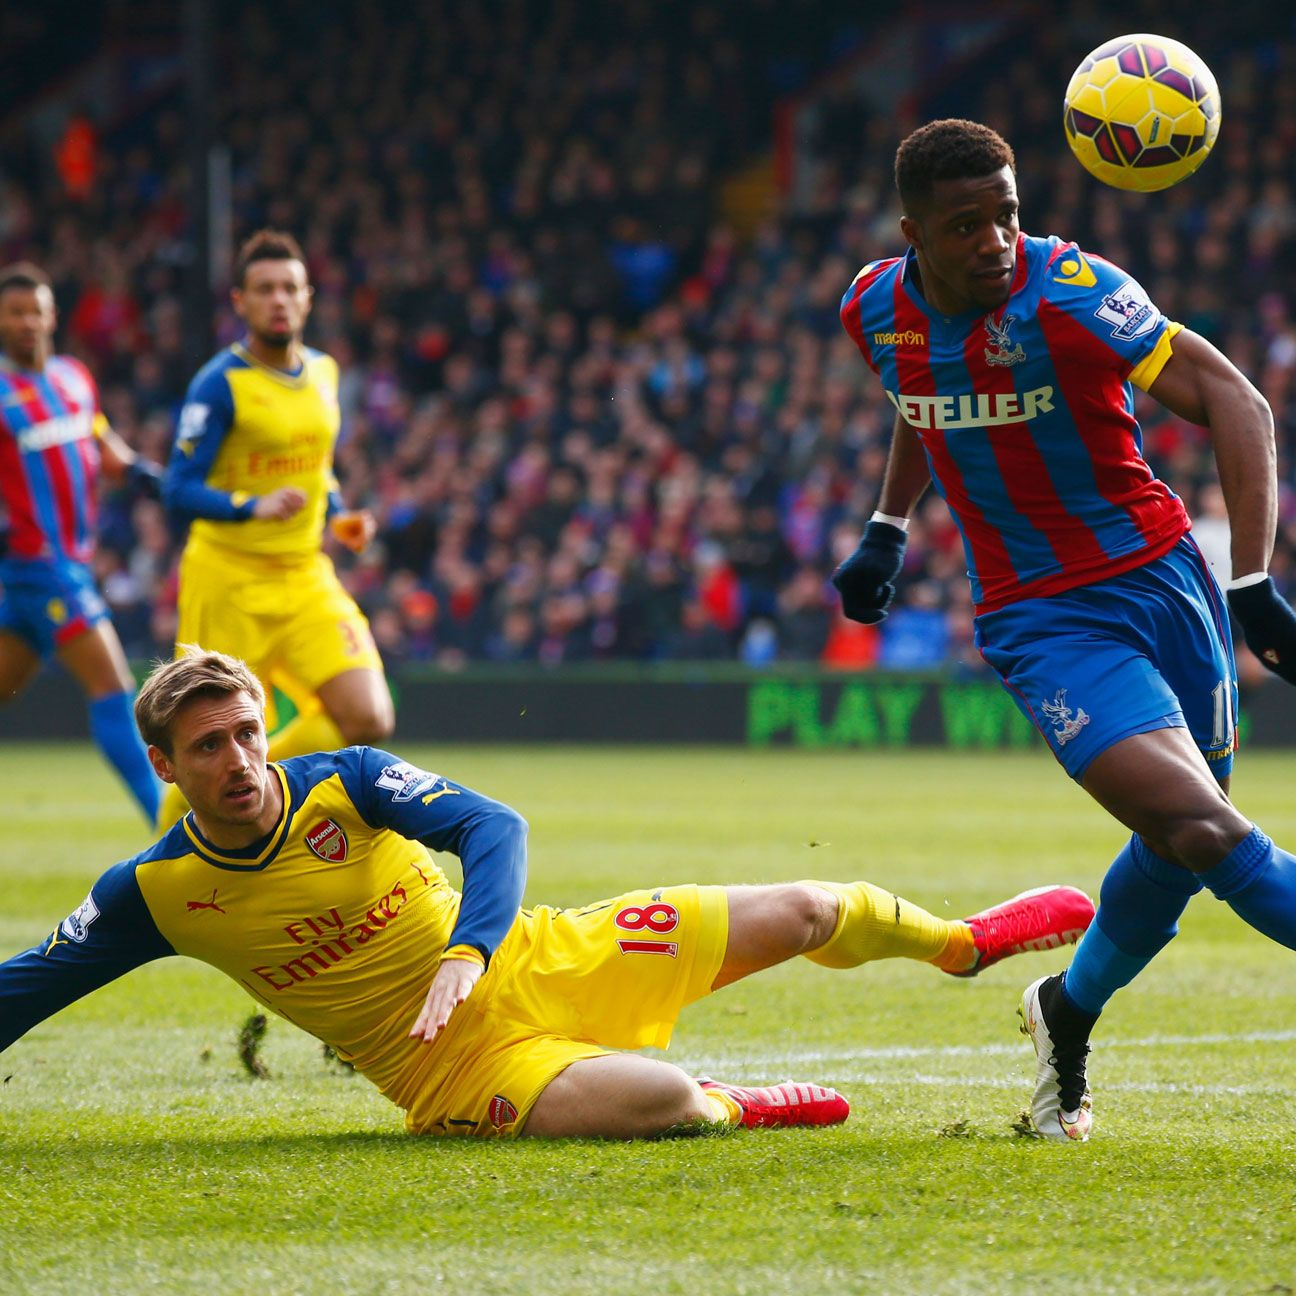 Wilfried Zaha and Crystal Palace will hope their Arsenal hoodoo comes to an end in Week 2.